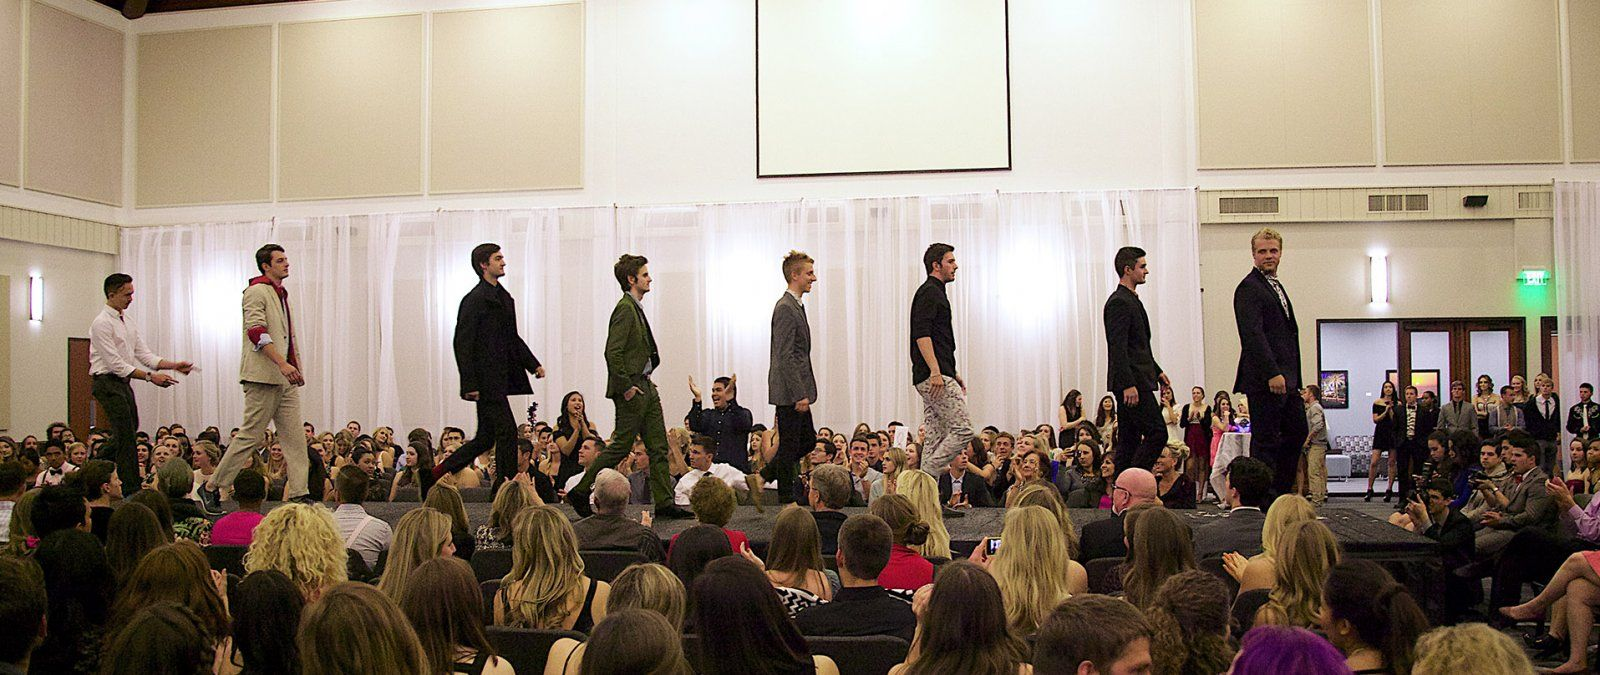 PLNU Student Walking on Stage for Fashion Show